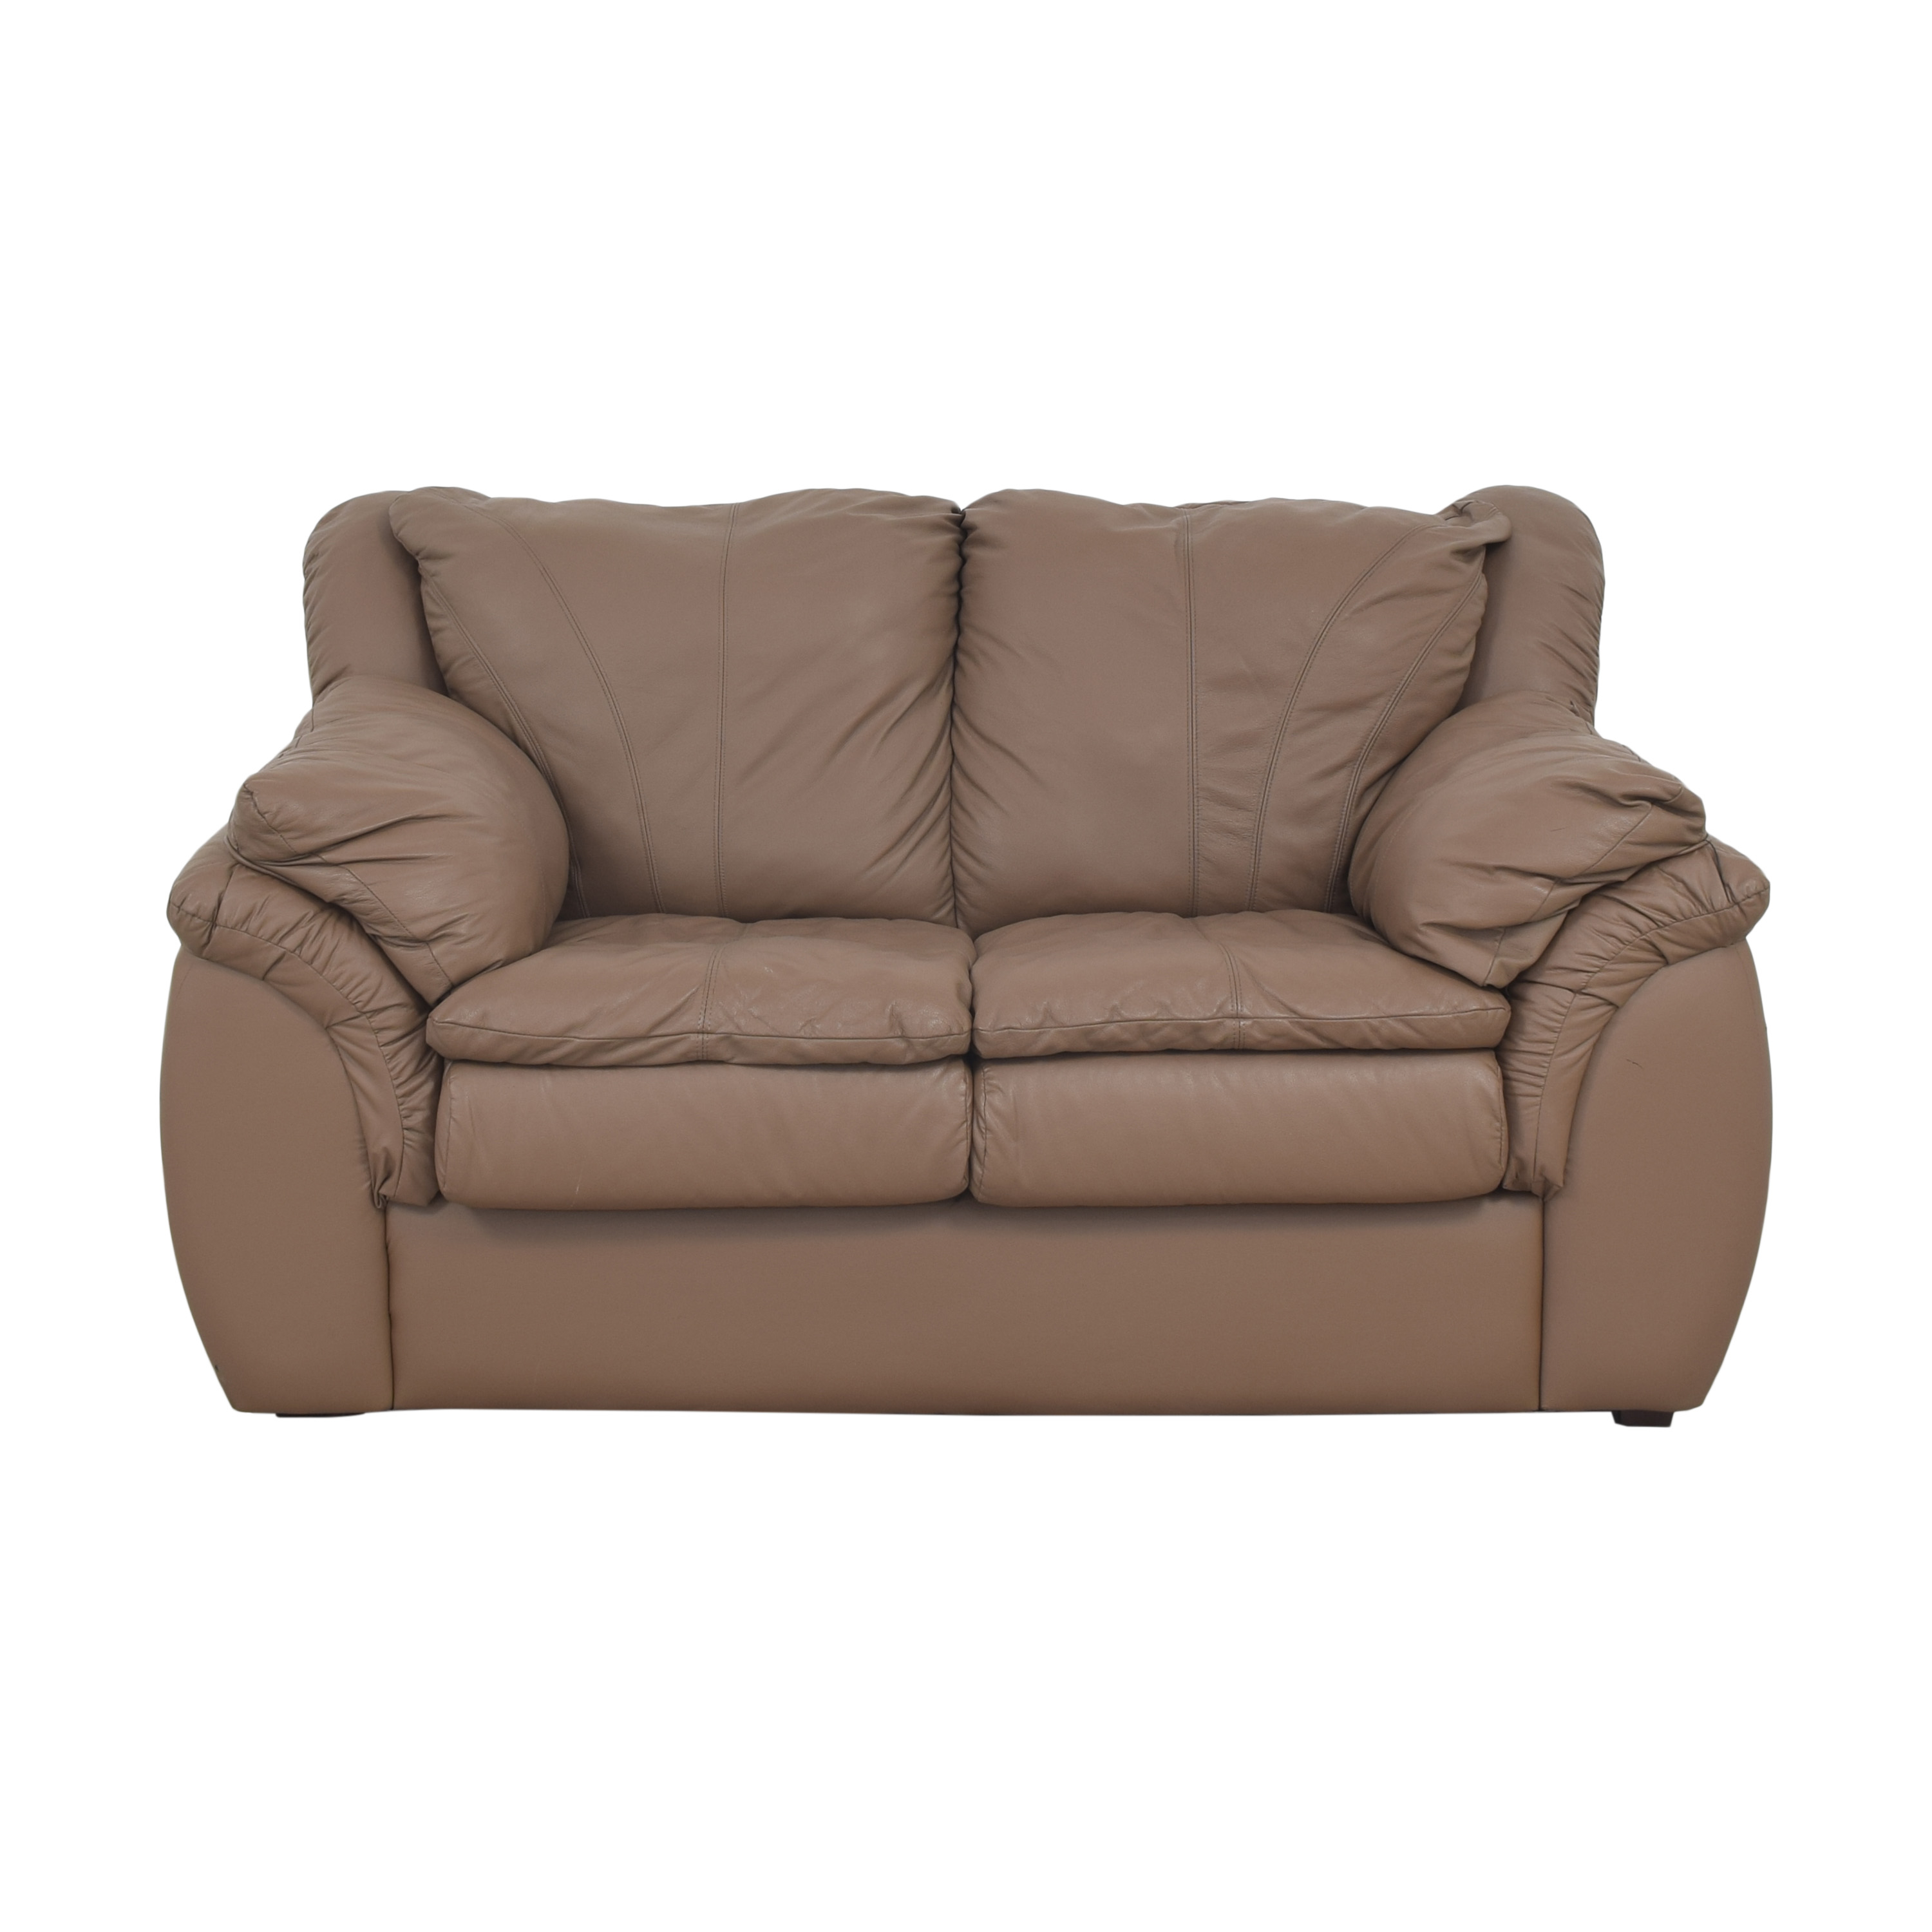 Plush Loveseat with Arm Cushions dimensions